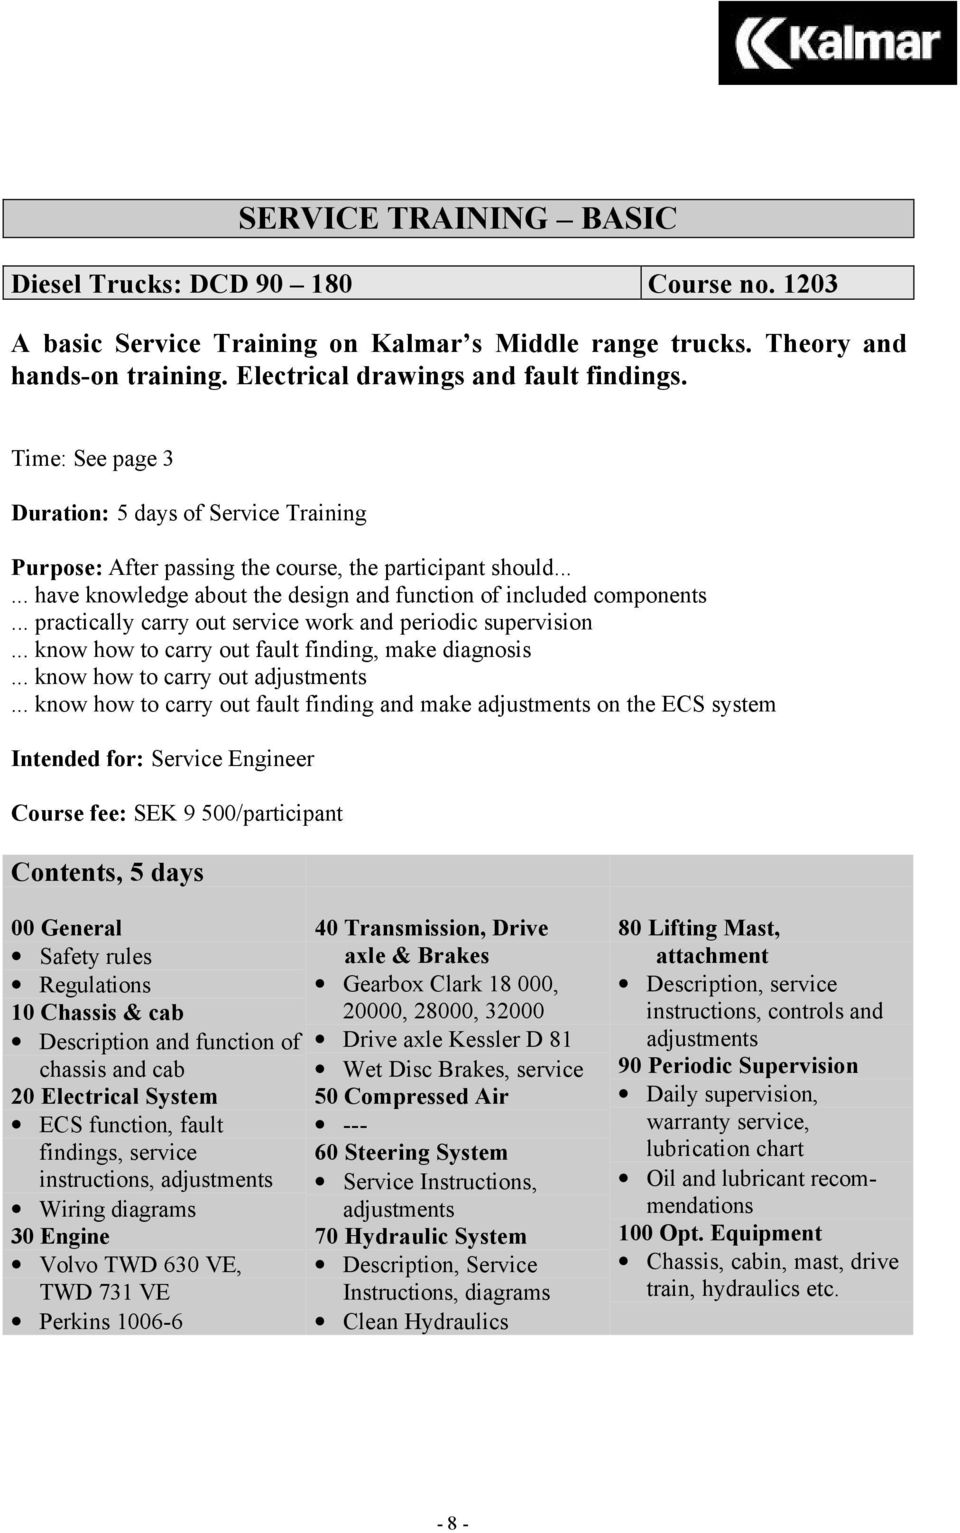 Kalmar Training Centre Service Operator Volvo 630 Wiring Diagram Know How To Carry Out Fault Finding And Make On The Ecs System Course